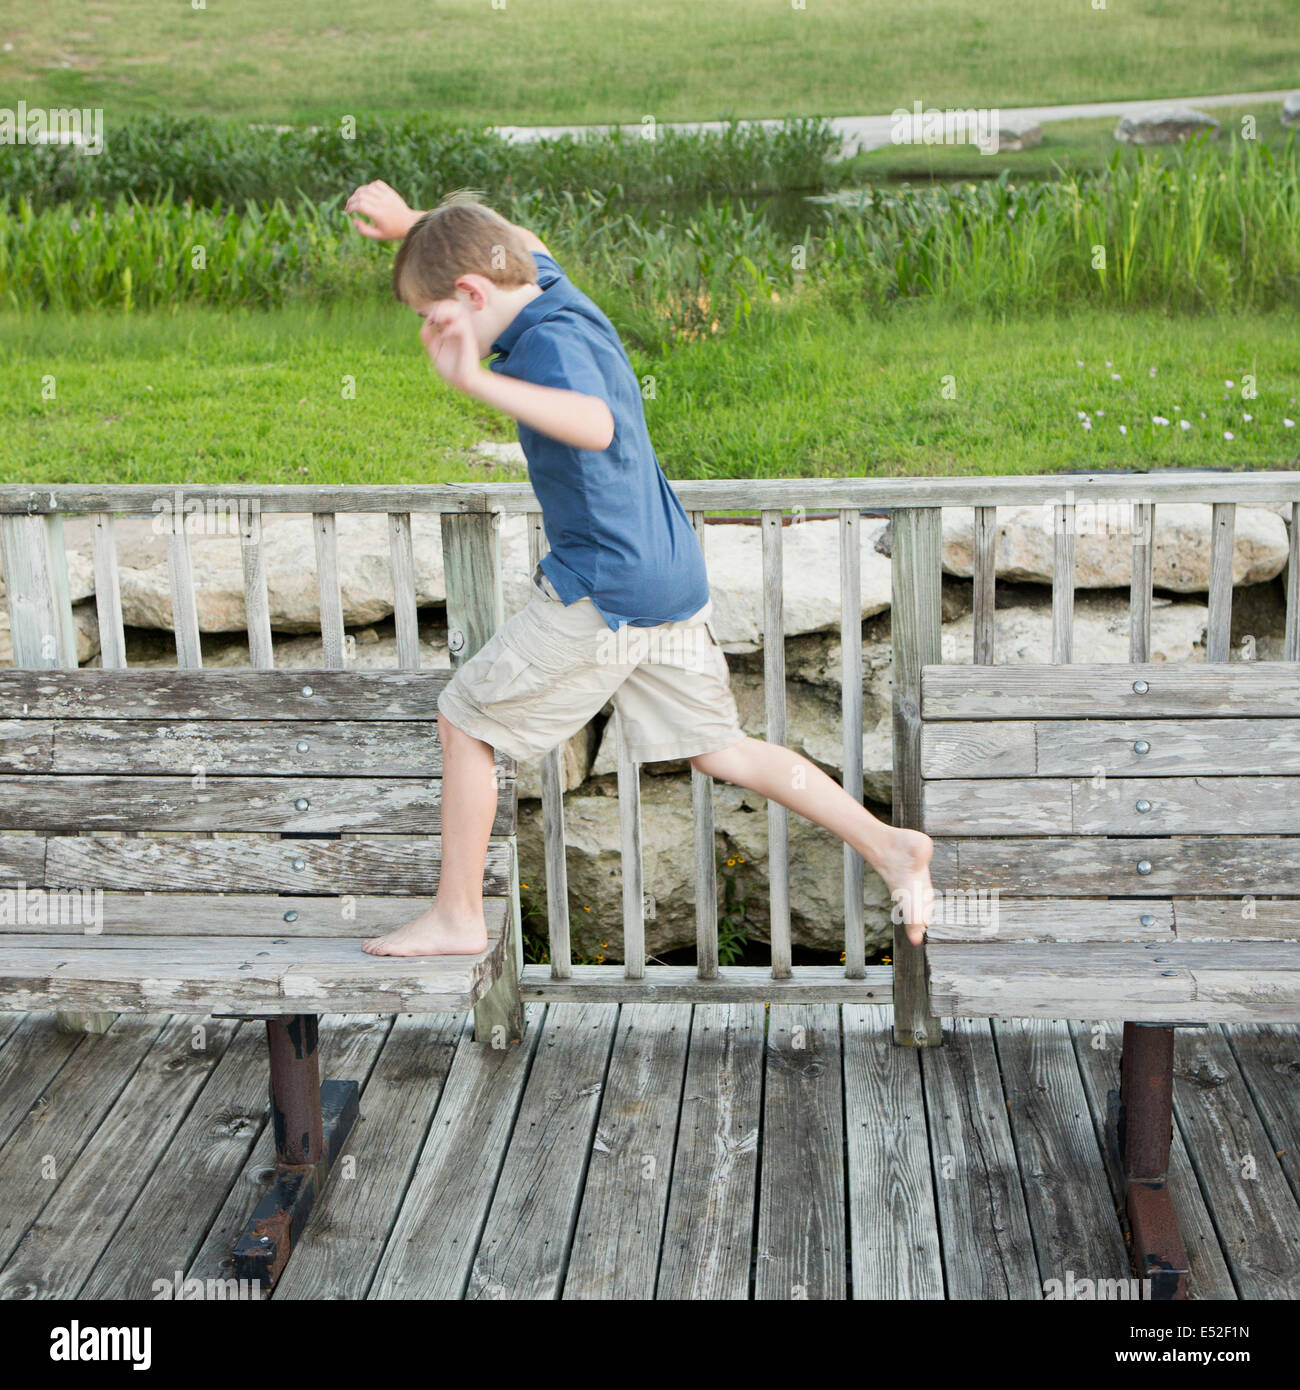 A young boy outdoors leaping from one bench to another on a jetty over water. - Stock Image